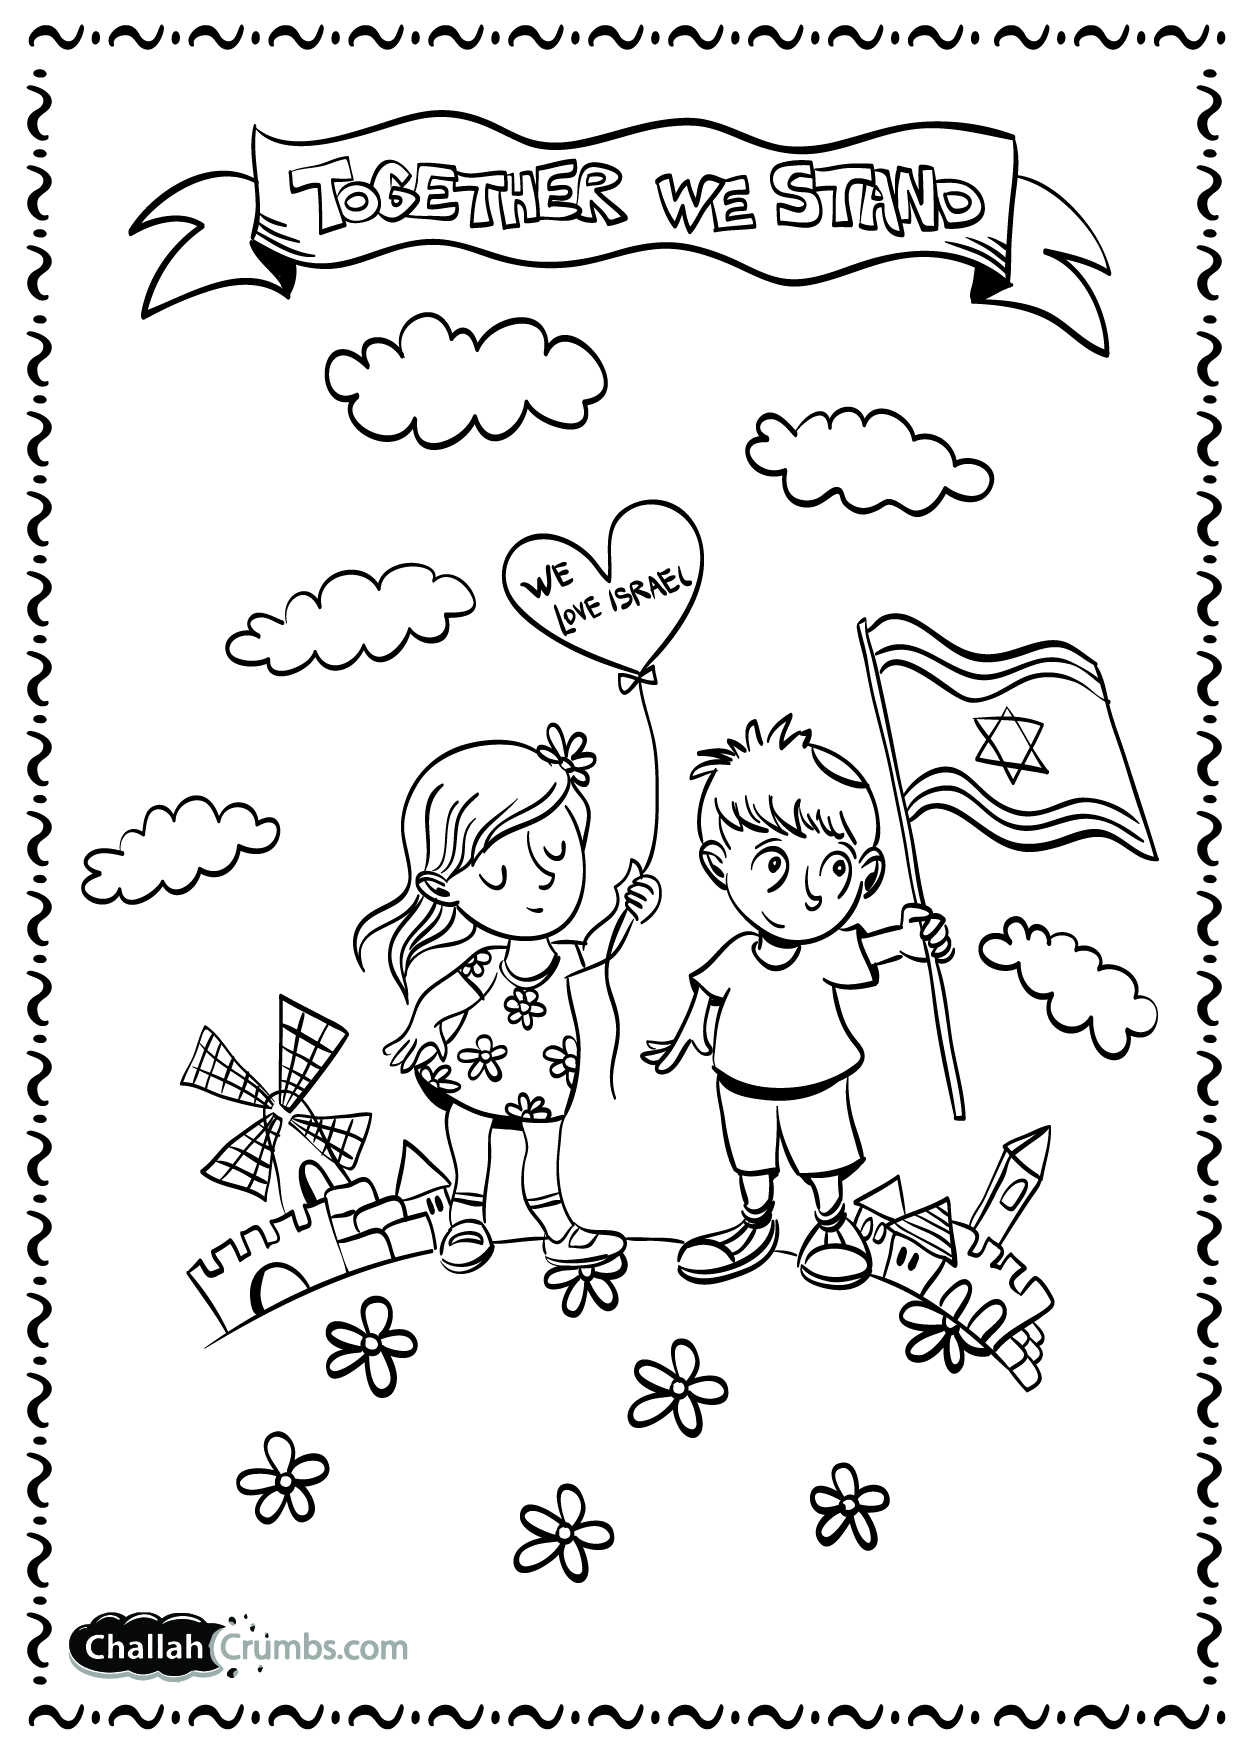 Israel Coloring Pages At Getcolorings